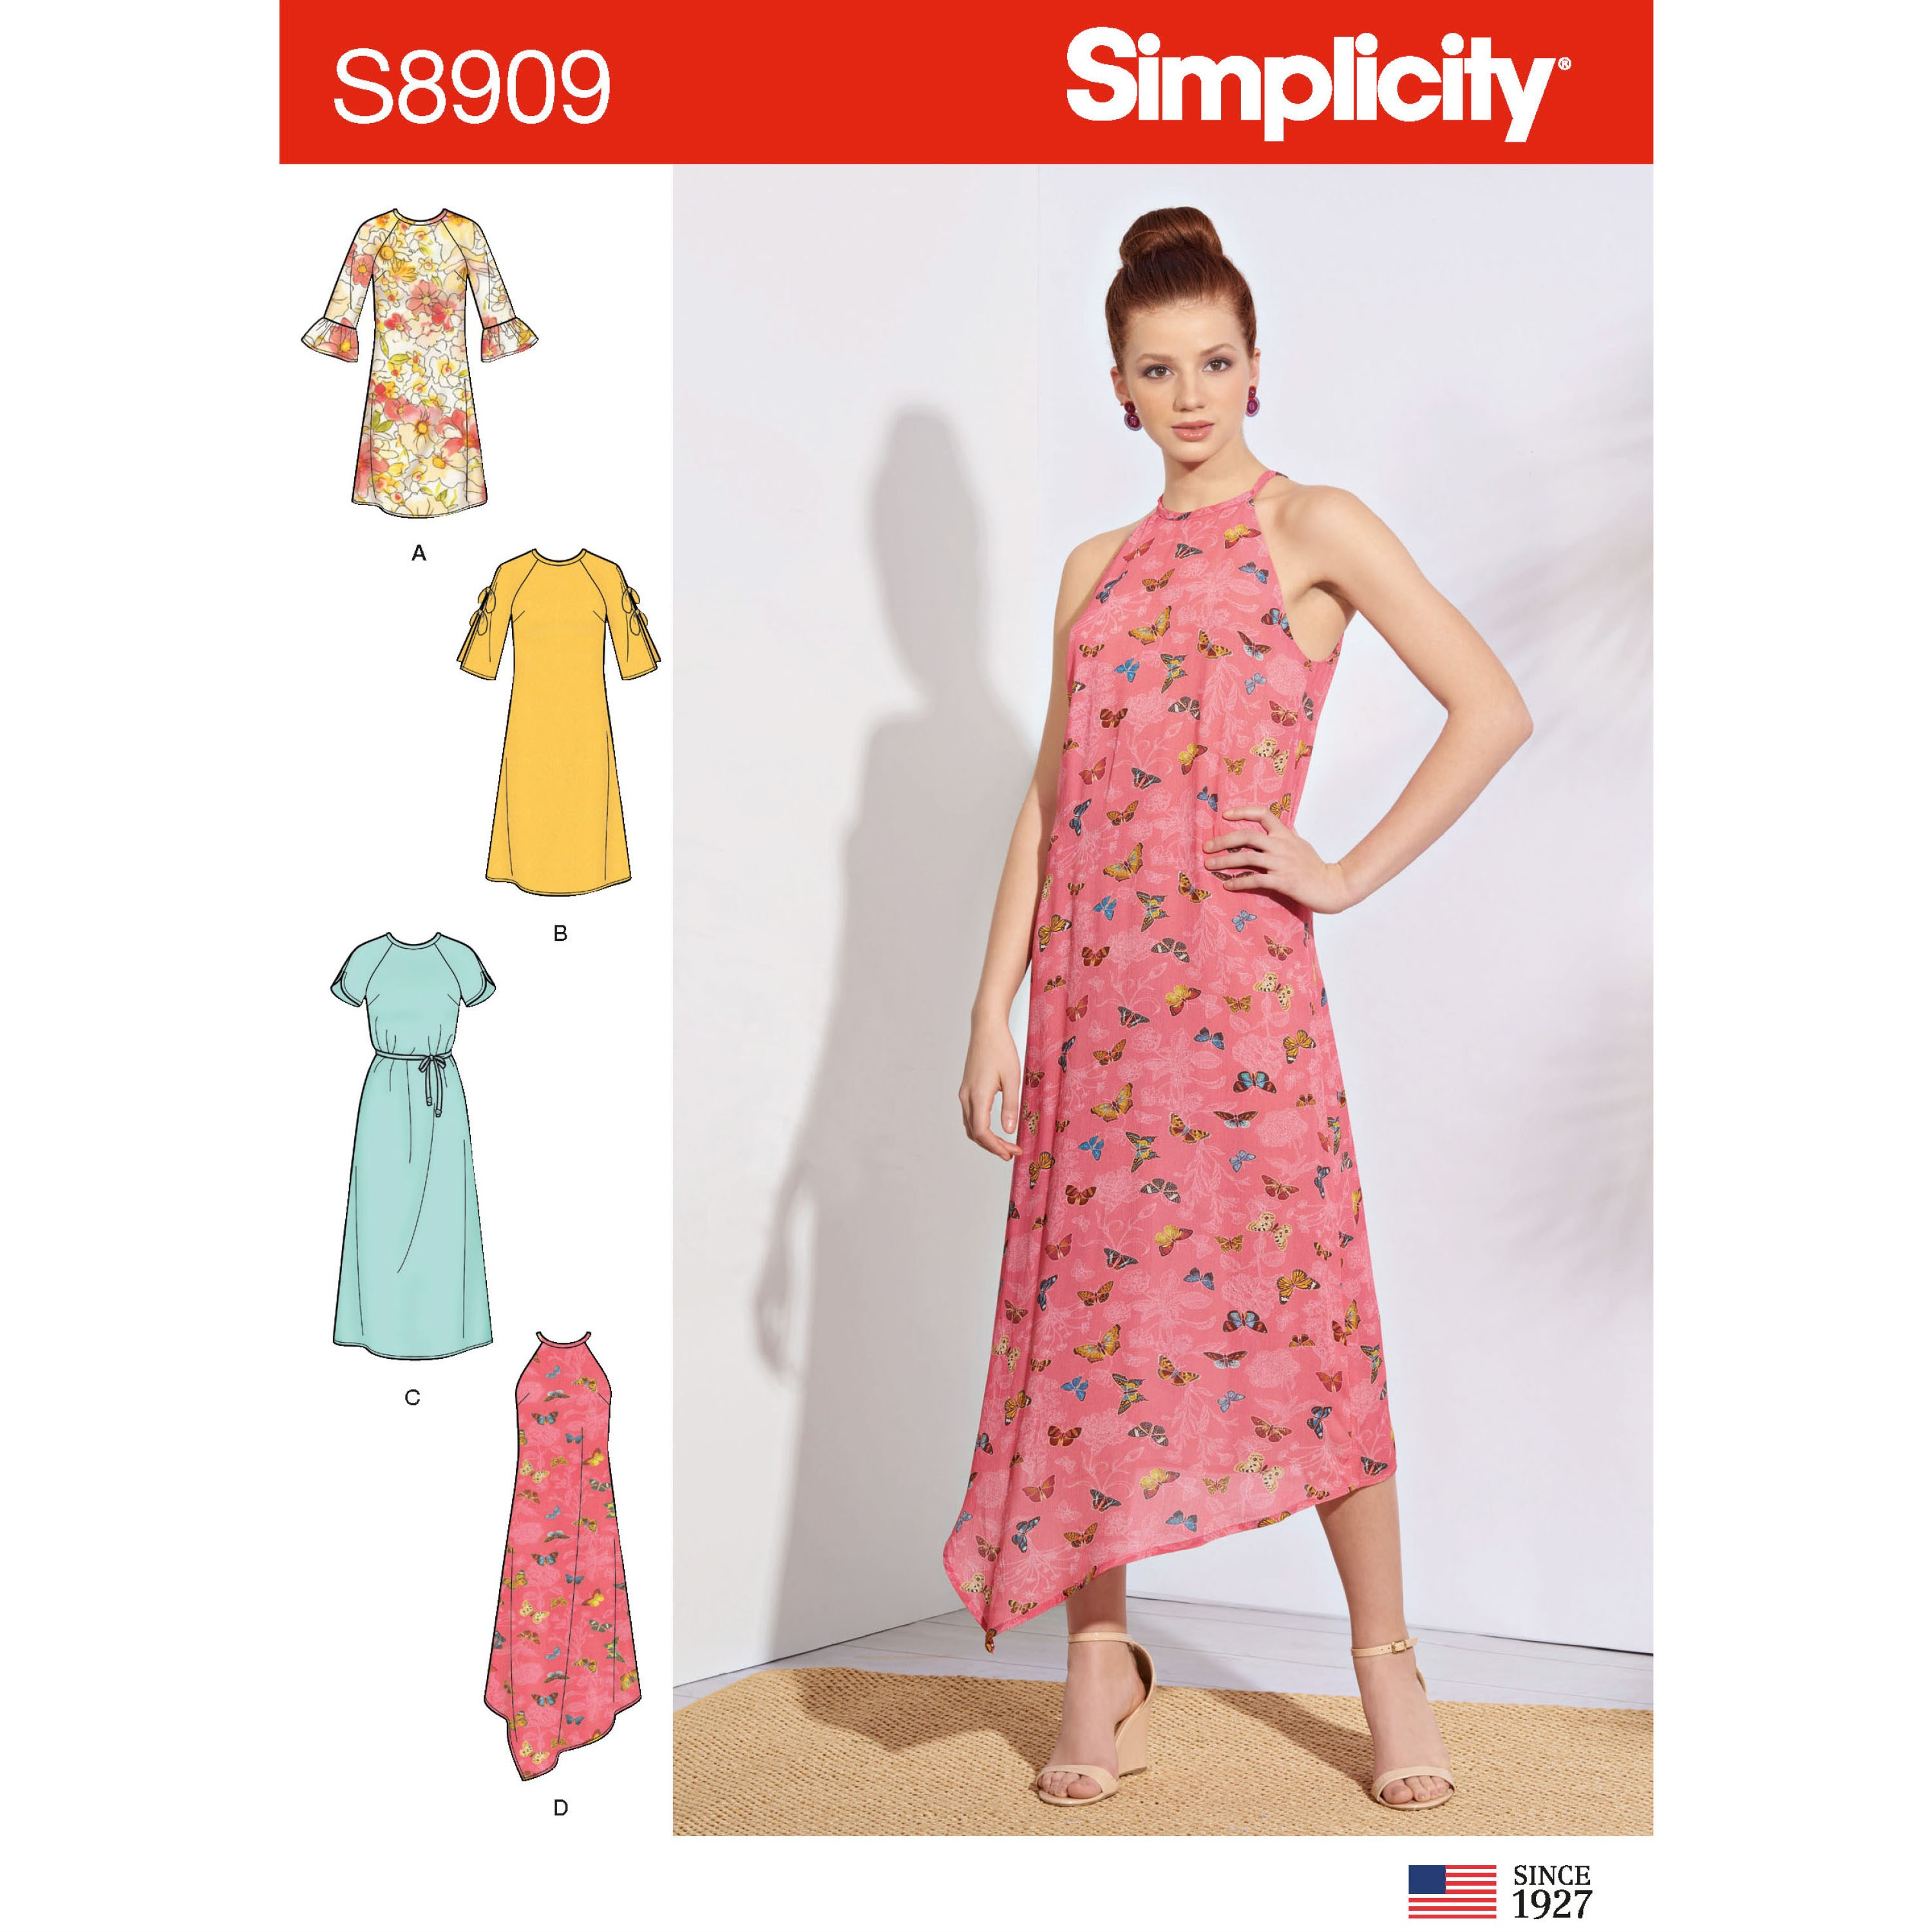 Simplicity Sewing Pattern 8909 Misses' Slip on Dress with Sleeve Options